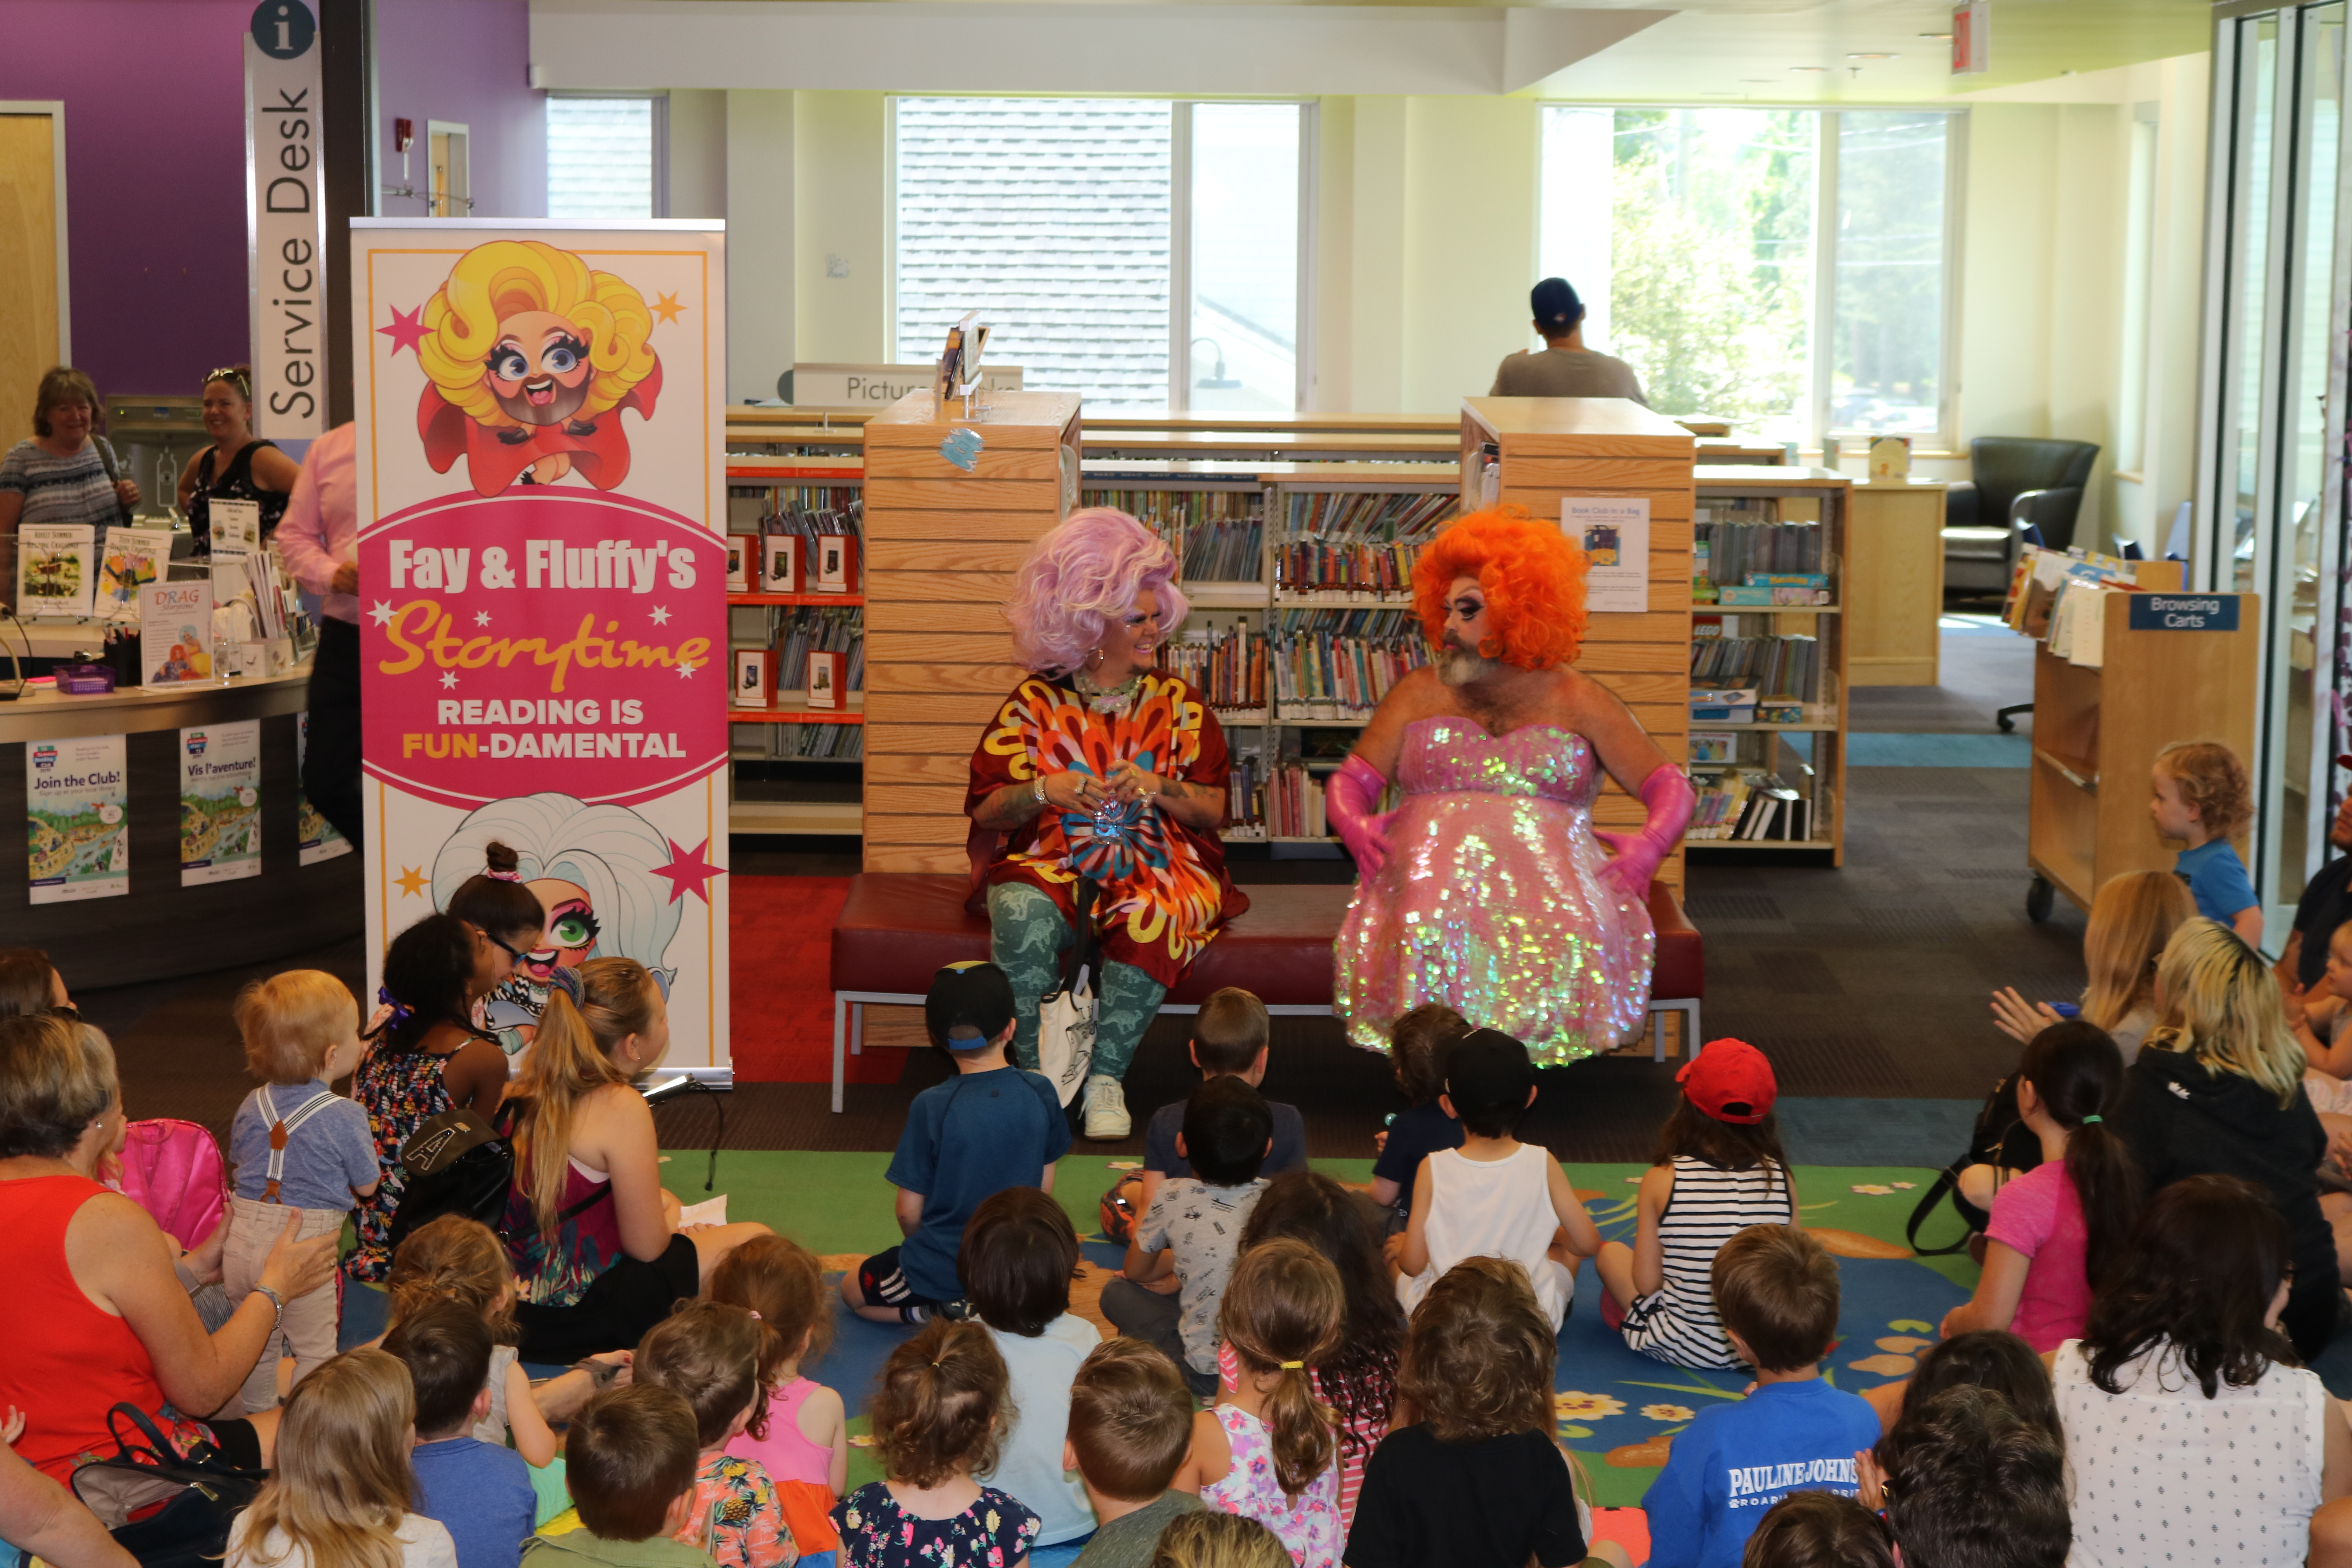 Drag Queen Storytime with with Fay and Fluffy